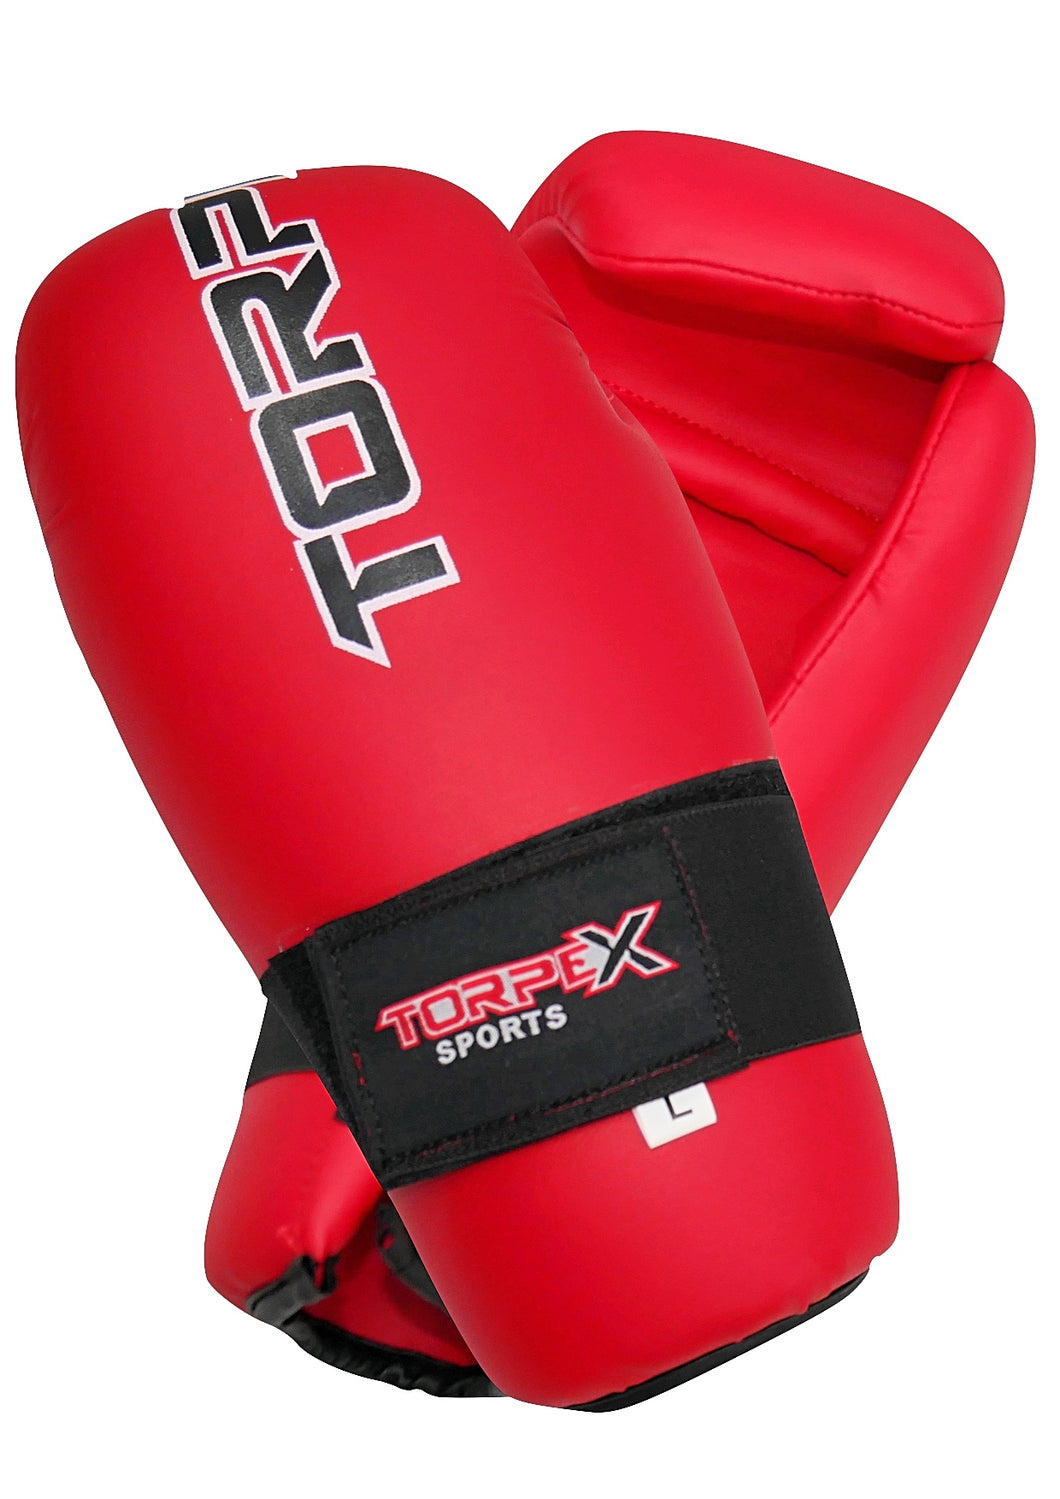 Torpex Red Edition Semi Contact Gloves